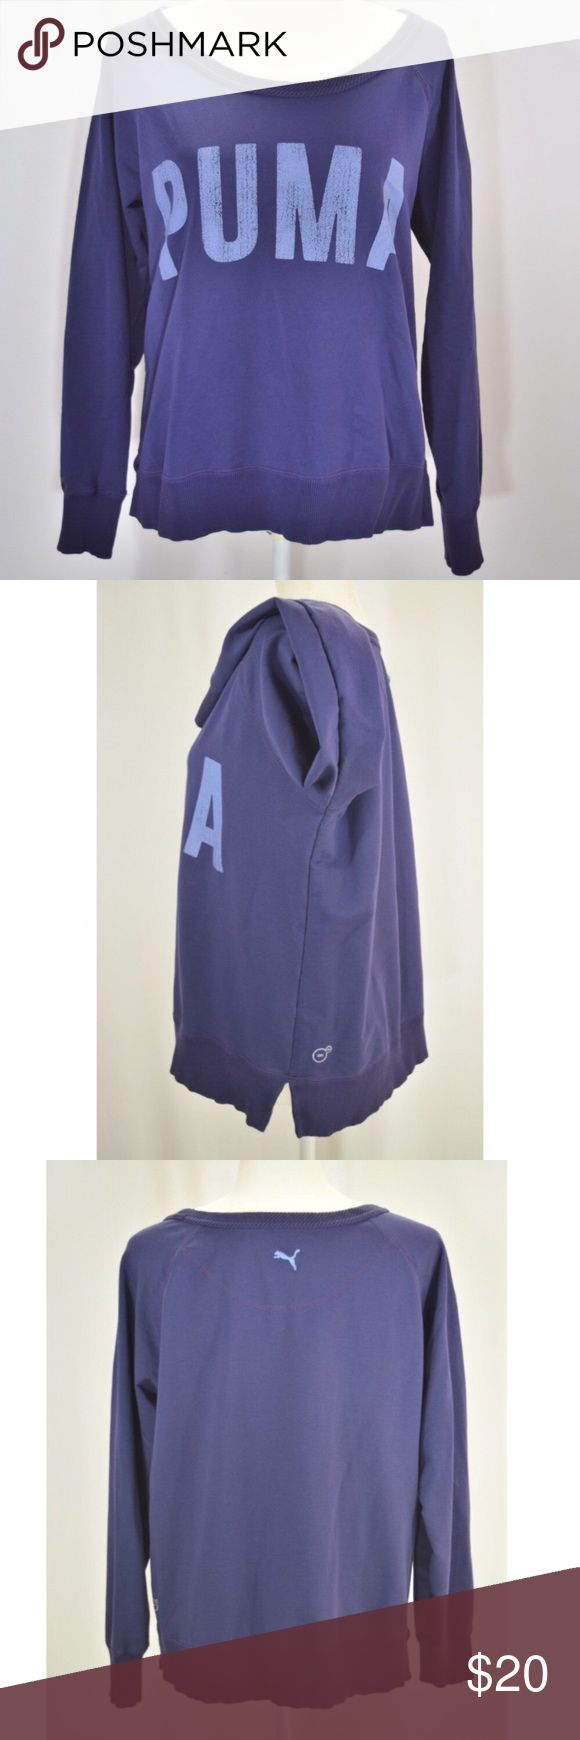 "Purple Puma Sweatshirt Purple Puma Sweatshirt🔹Size XL🔹68% cotton, 25% polyester, 7% elastane🔹Great condition🔹This sweatshirt is meant to come up for a bit of a cropped look-top of shoulder to bottom hem is approx 23.75""🔹Smoke and pet free home Puma Tops Sweatshirts & Hoodies"